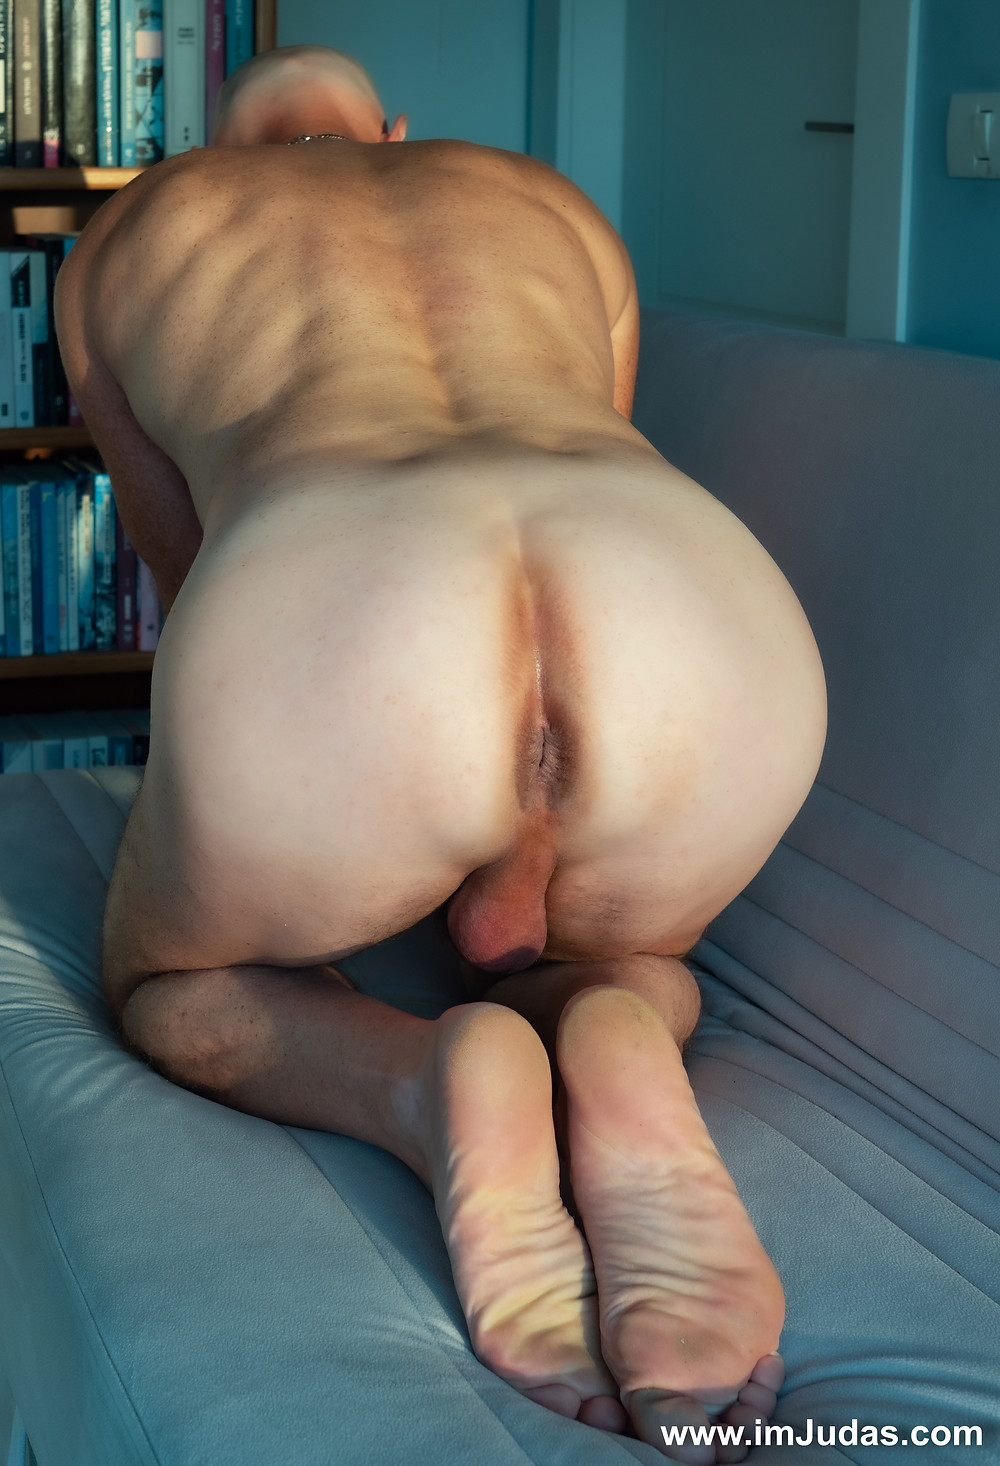 naked anus ass hole male model man